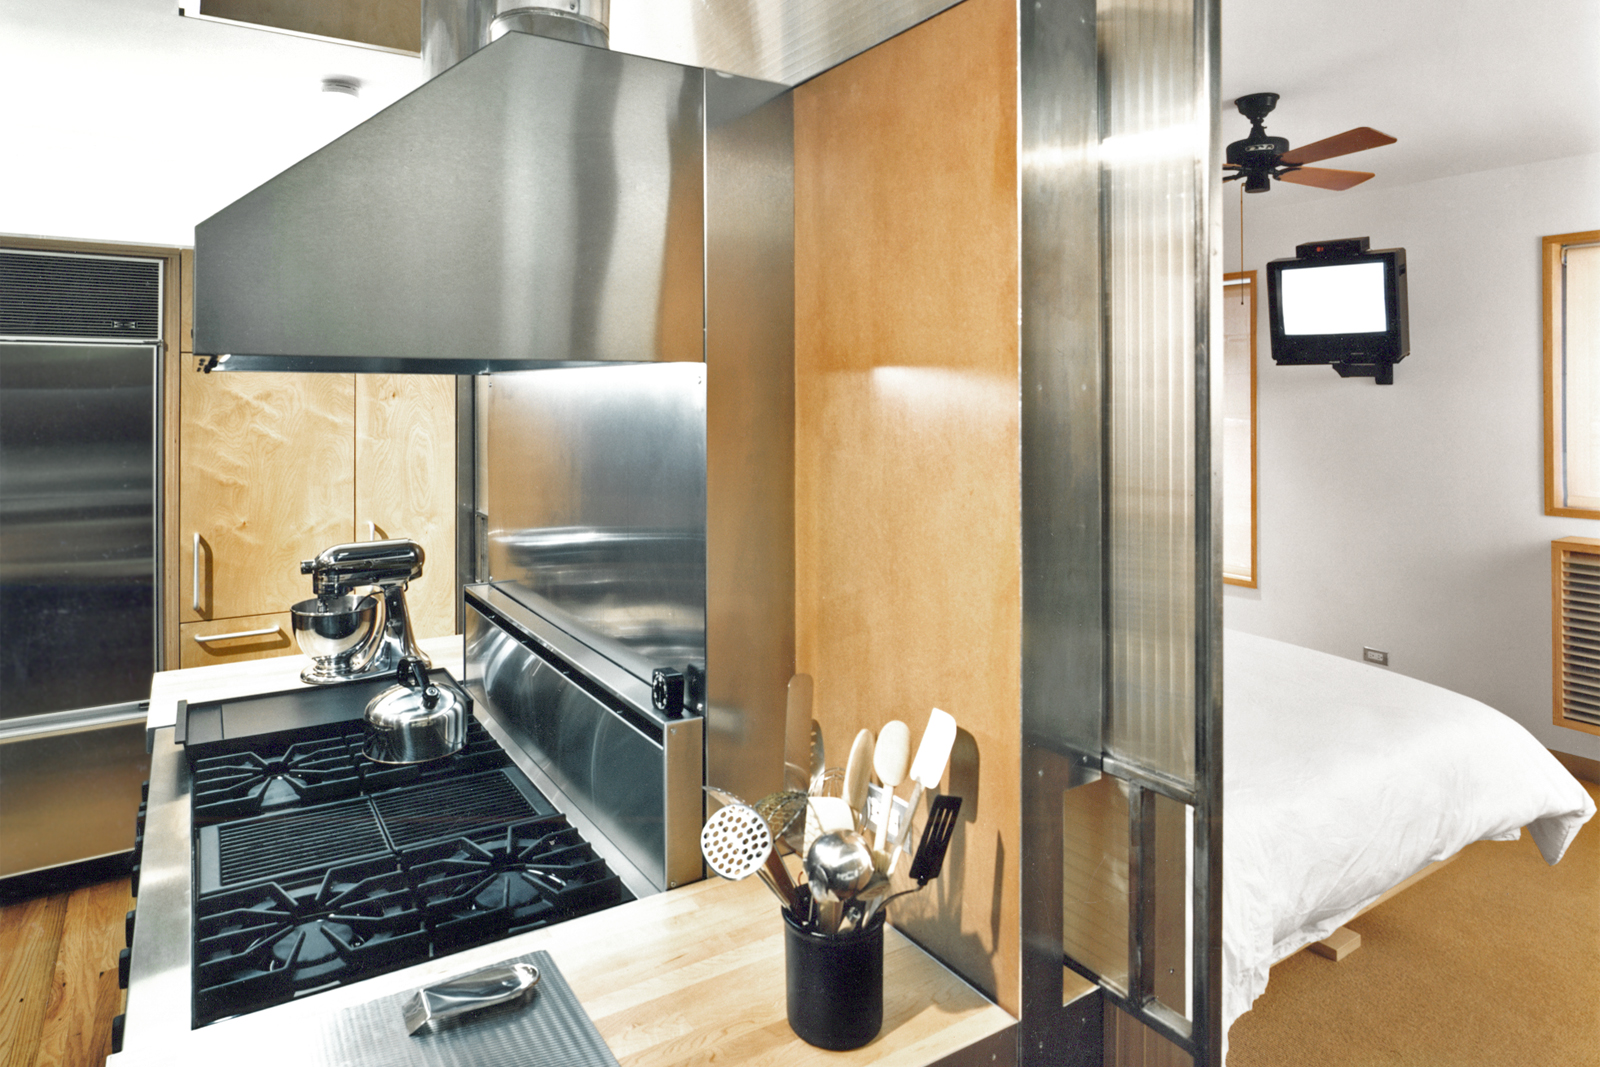 08-res4-resolution-4-architecture-modern-apartment-residential-rons-loft-interior-kitchen-bedroom.jpg